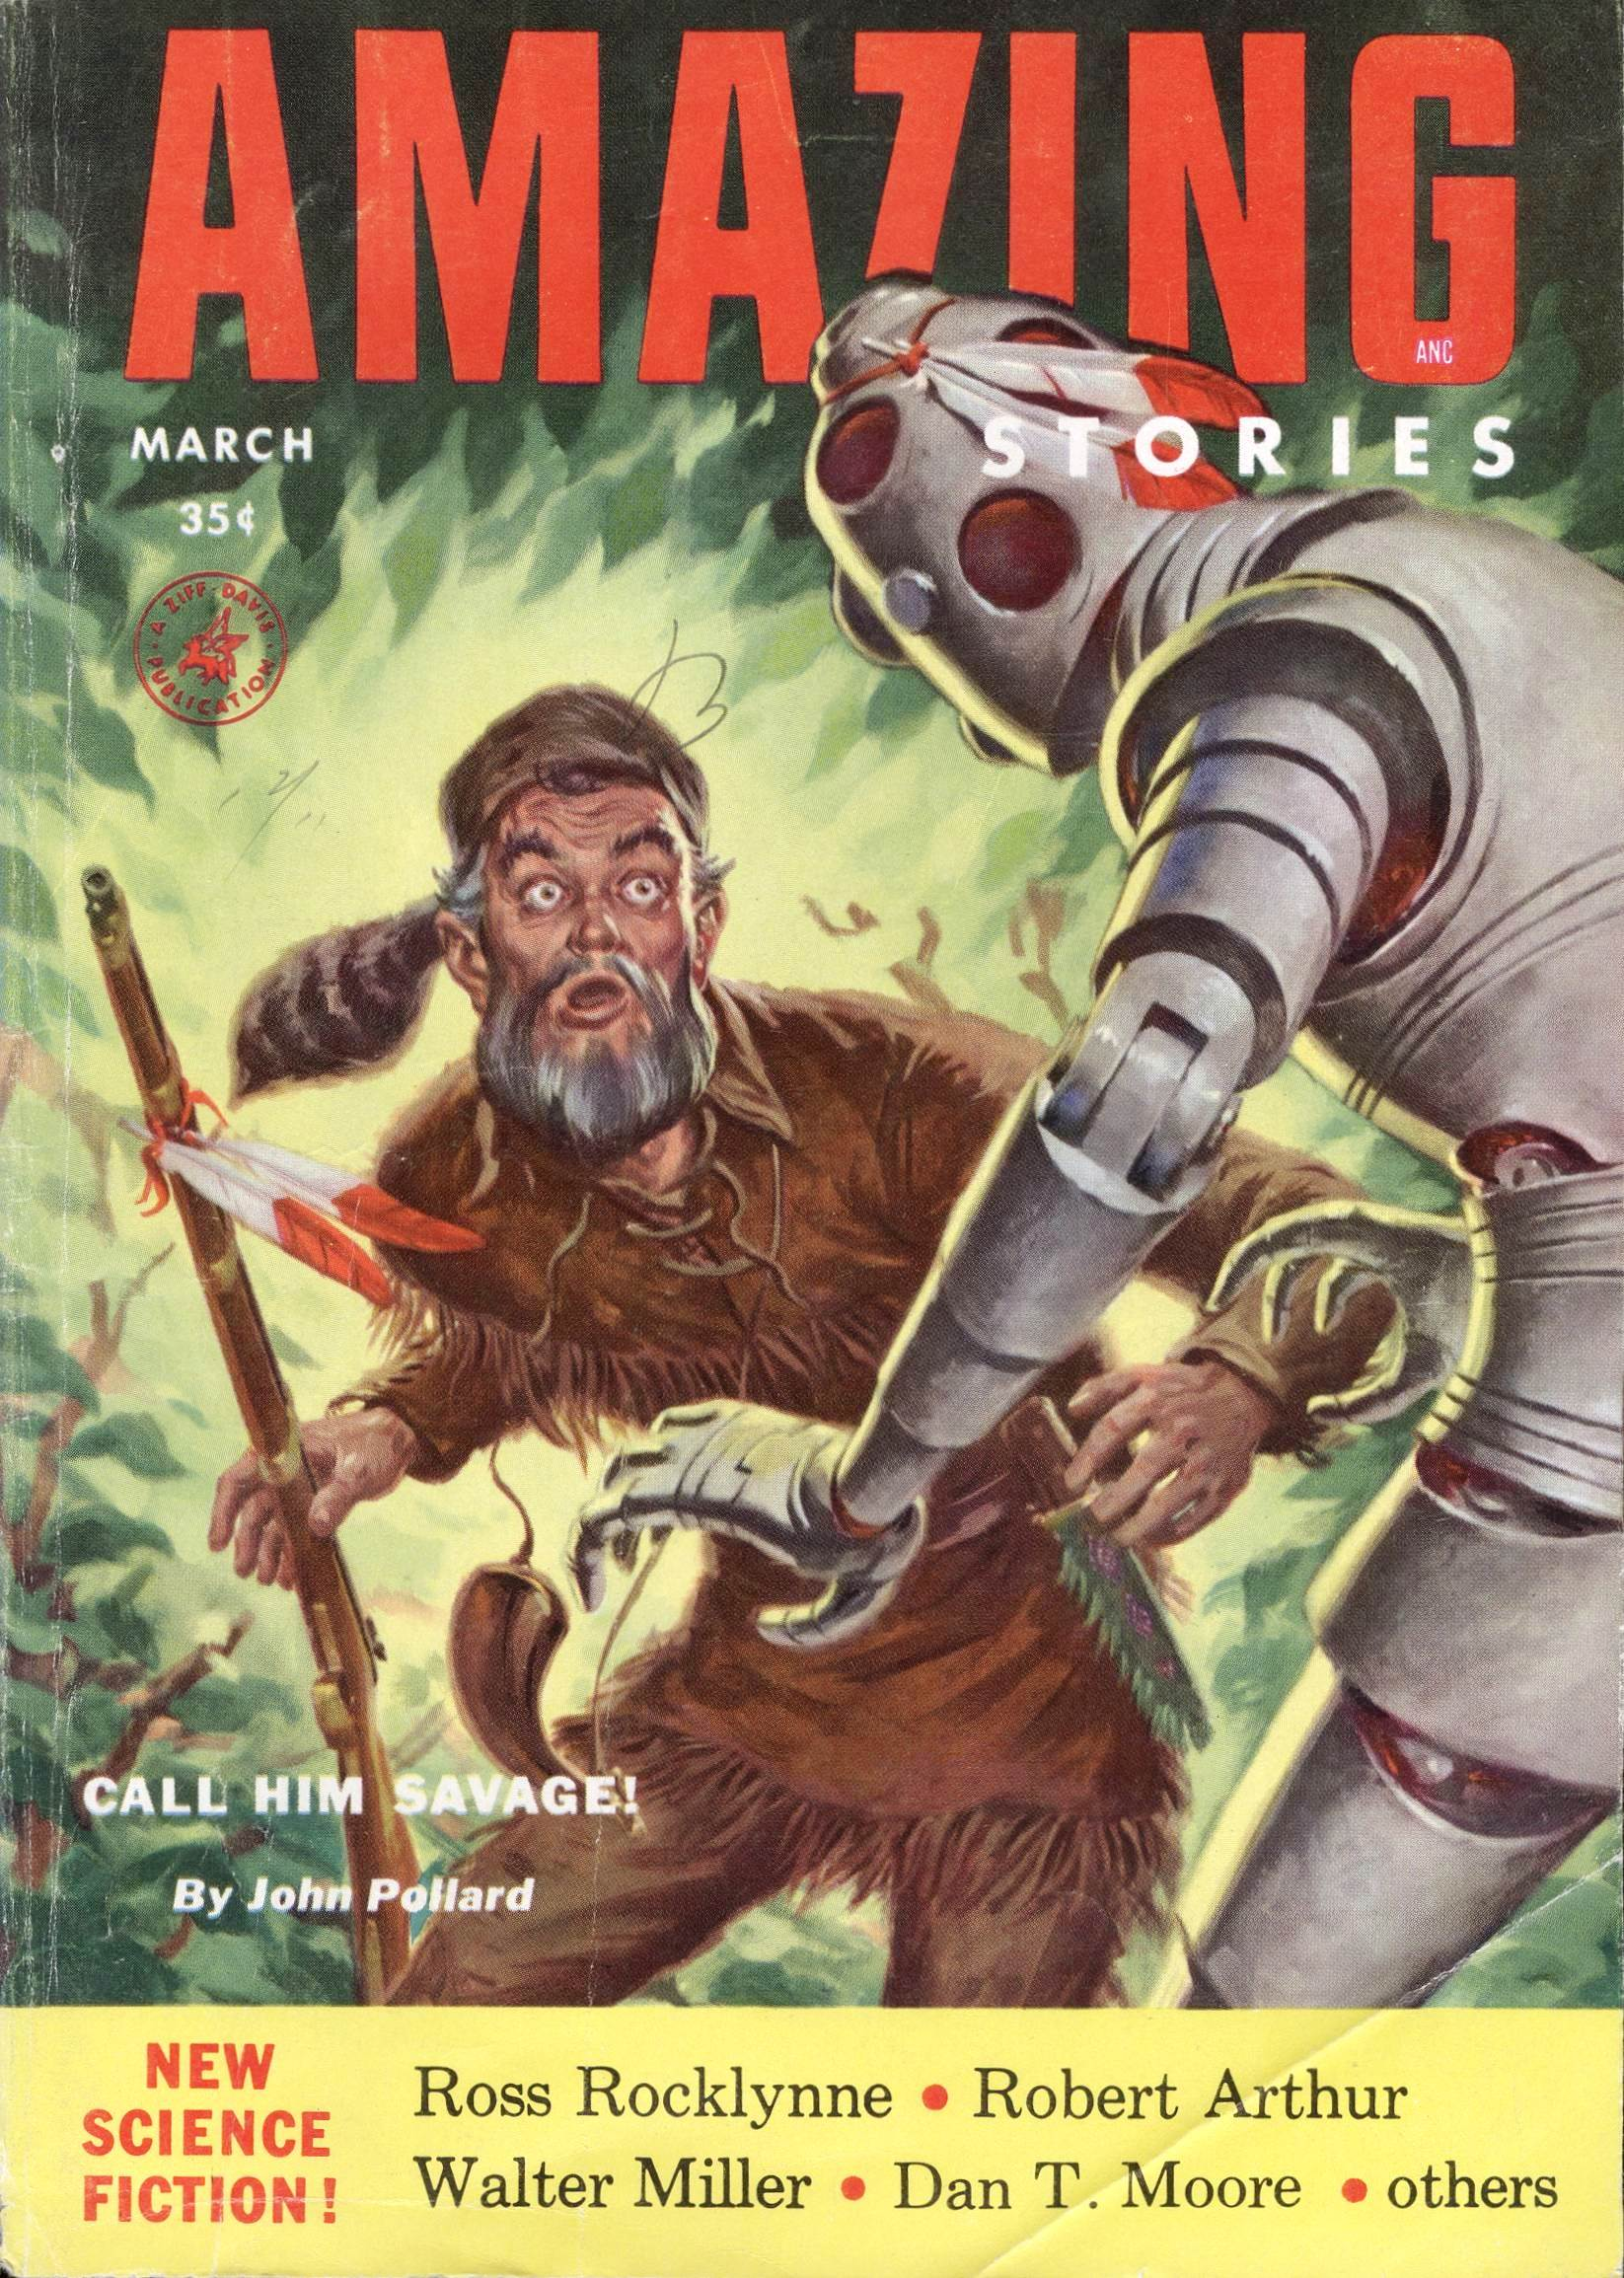 Amazing Stories, March 1954